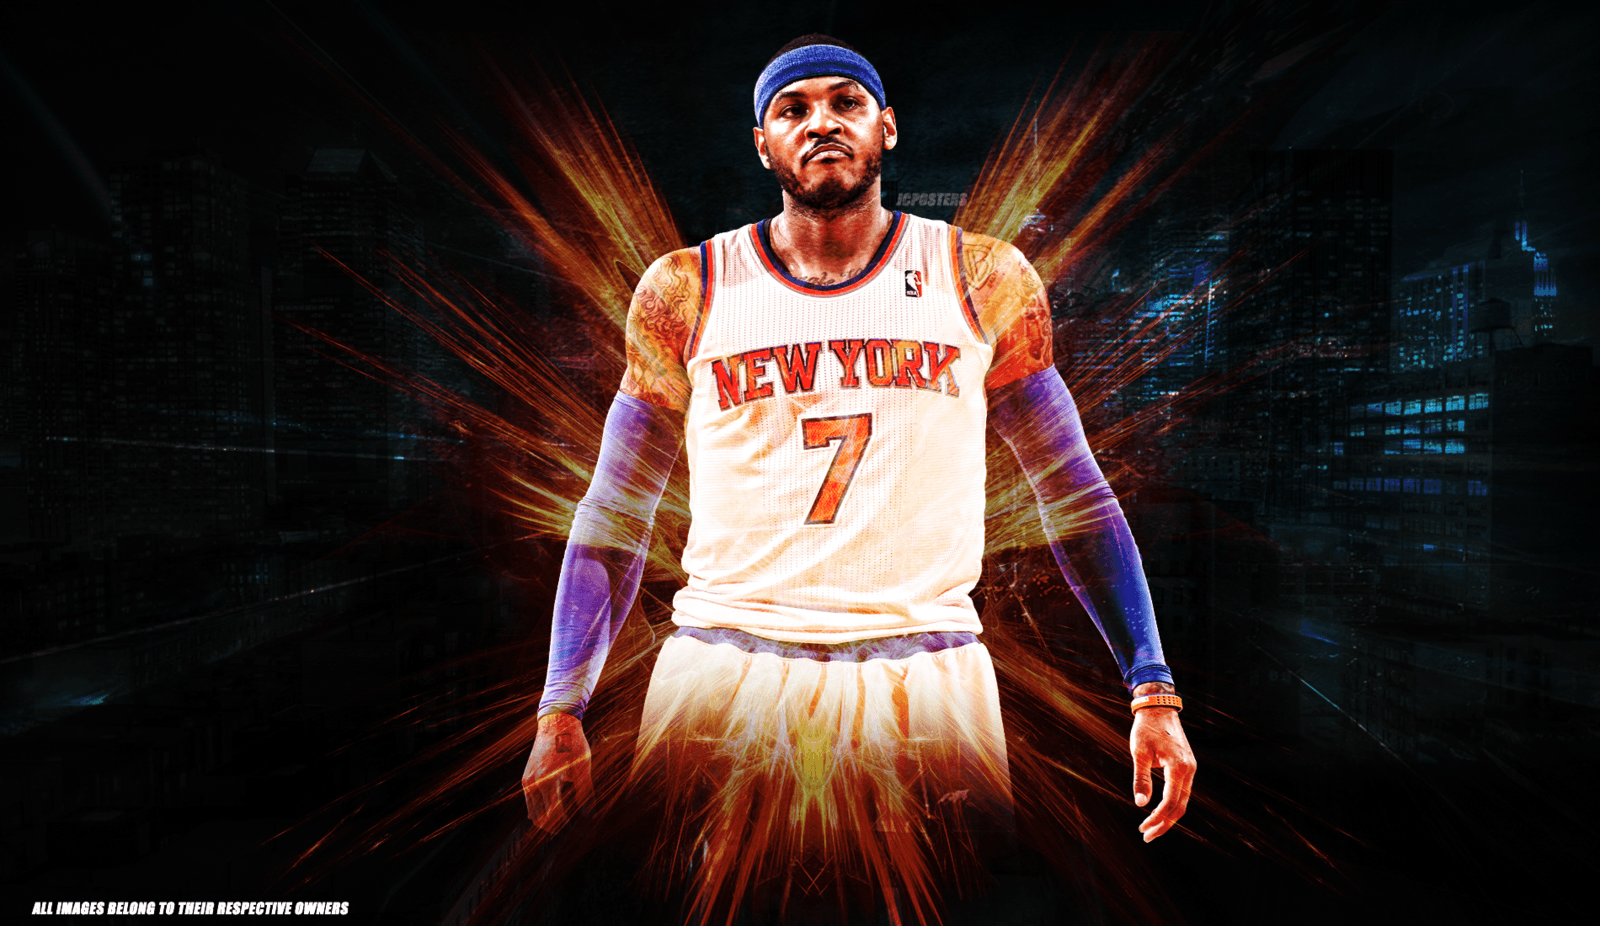 Carmelo Anthony Wallpapers 2016 - Wallpaper Cave